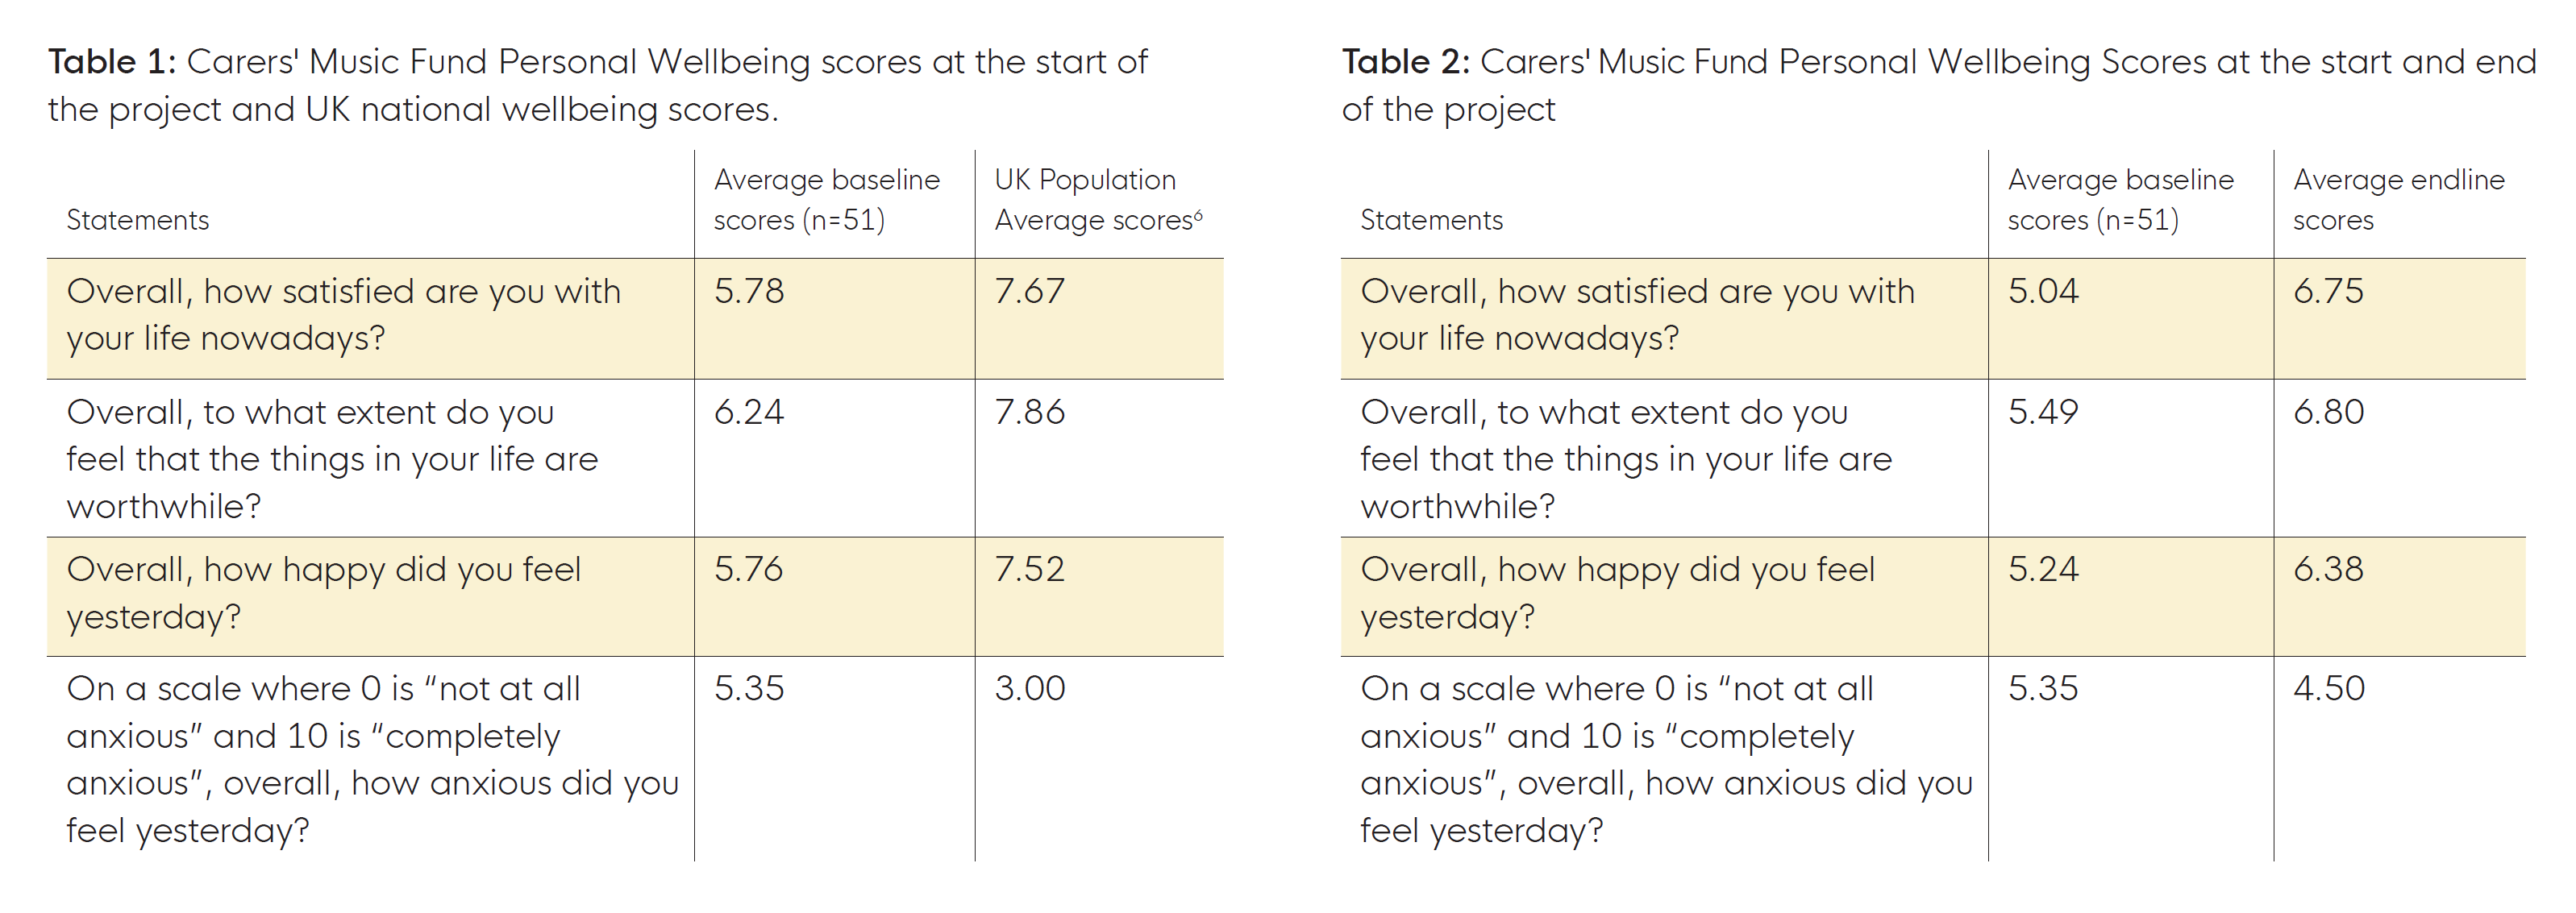 Carers' Music Fund Personal Wellbeing scores at the start of the project and UK national wellbeing scores.